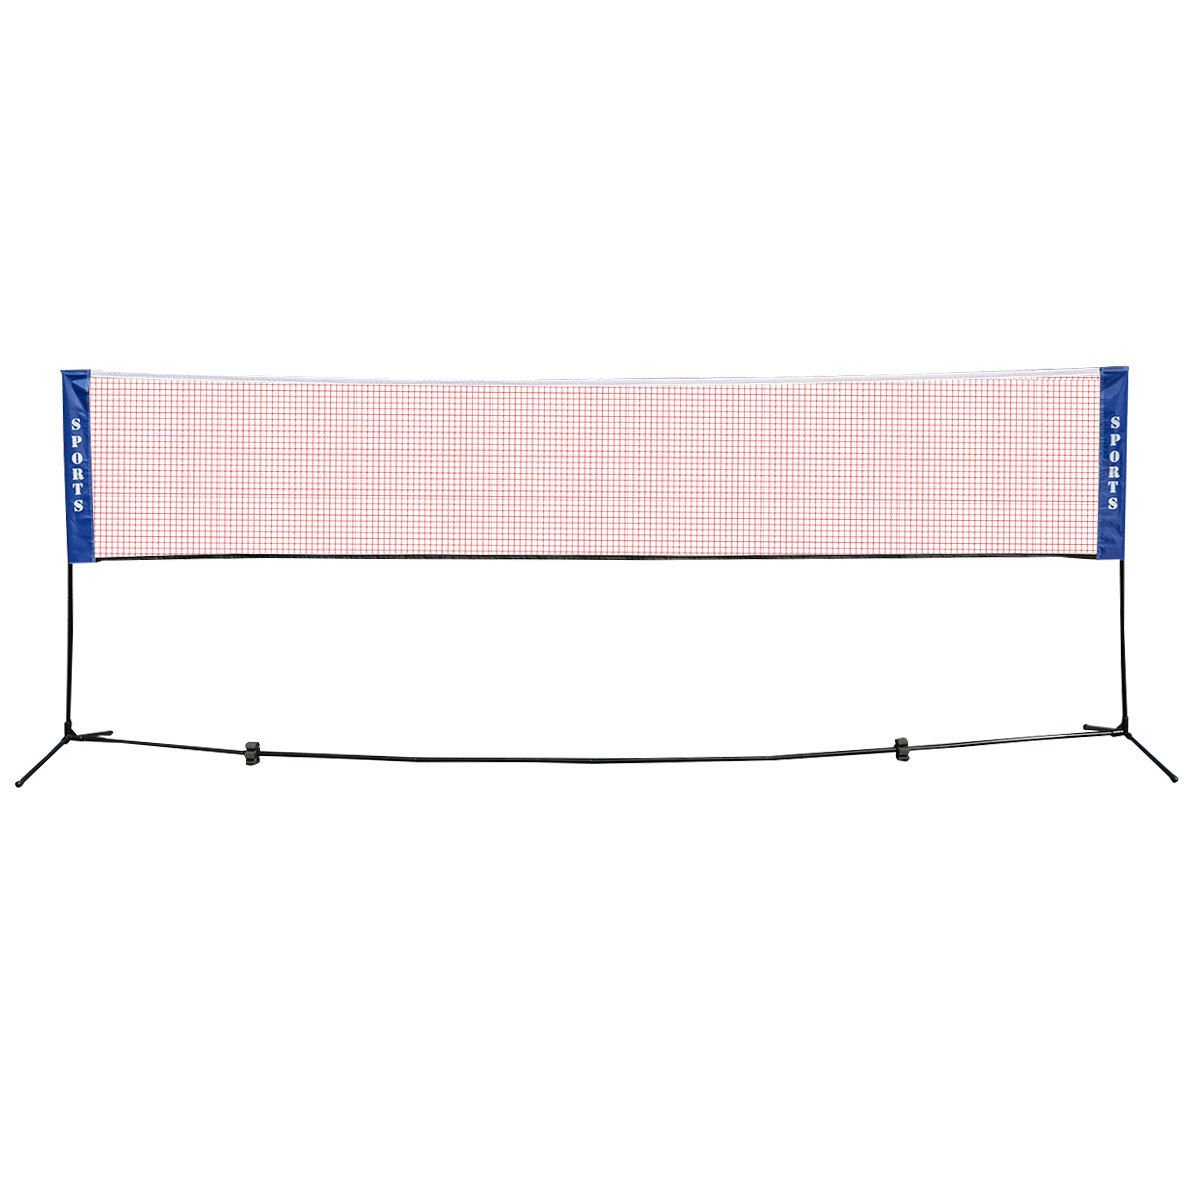 Volleyball net dimensions